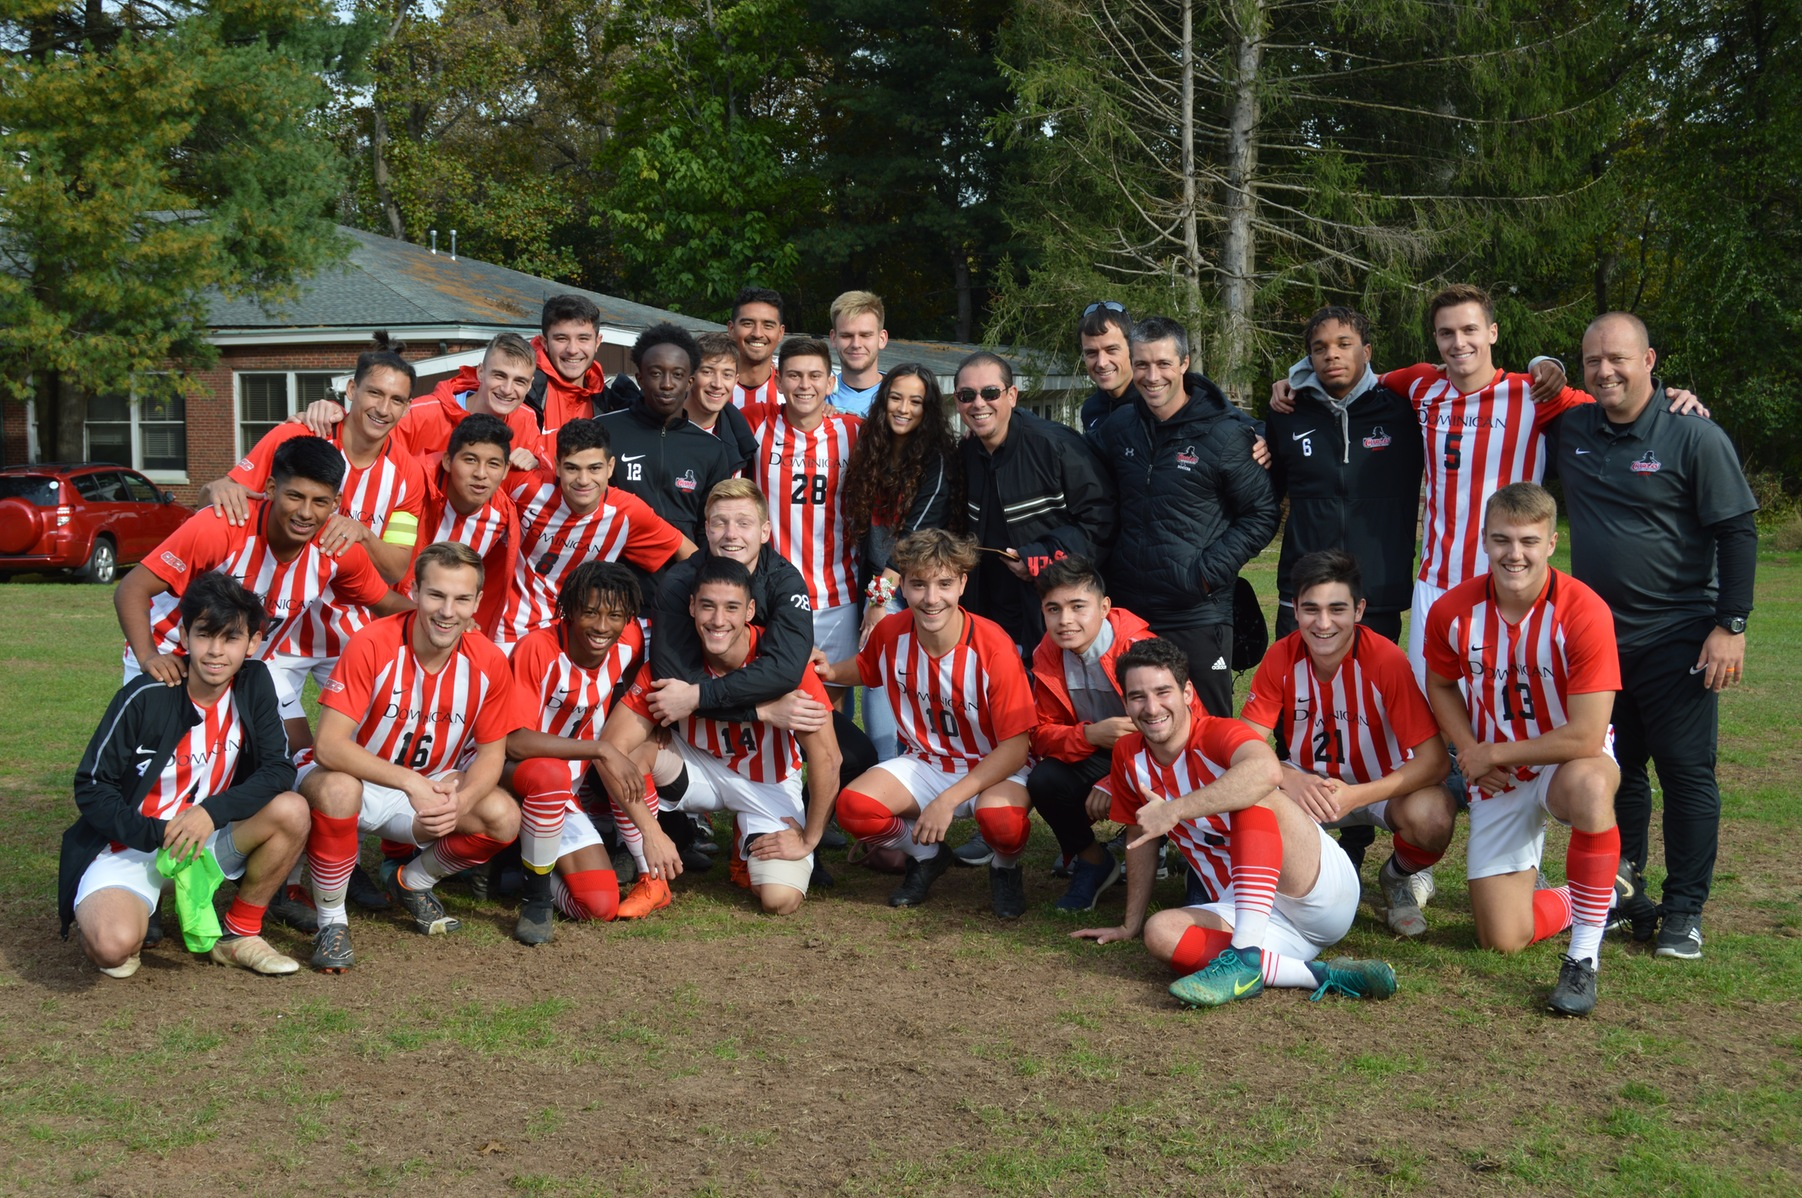 MEN'S SOCCER  HONOR MARTINEZ IN FINAL MATCH OF COLLEGIATE CAREER